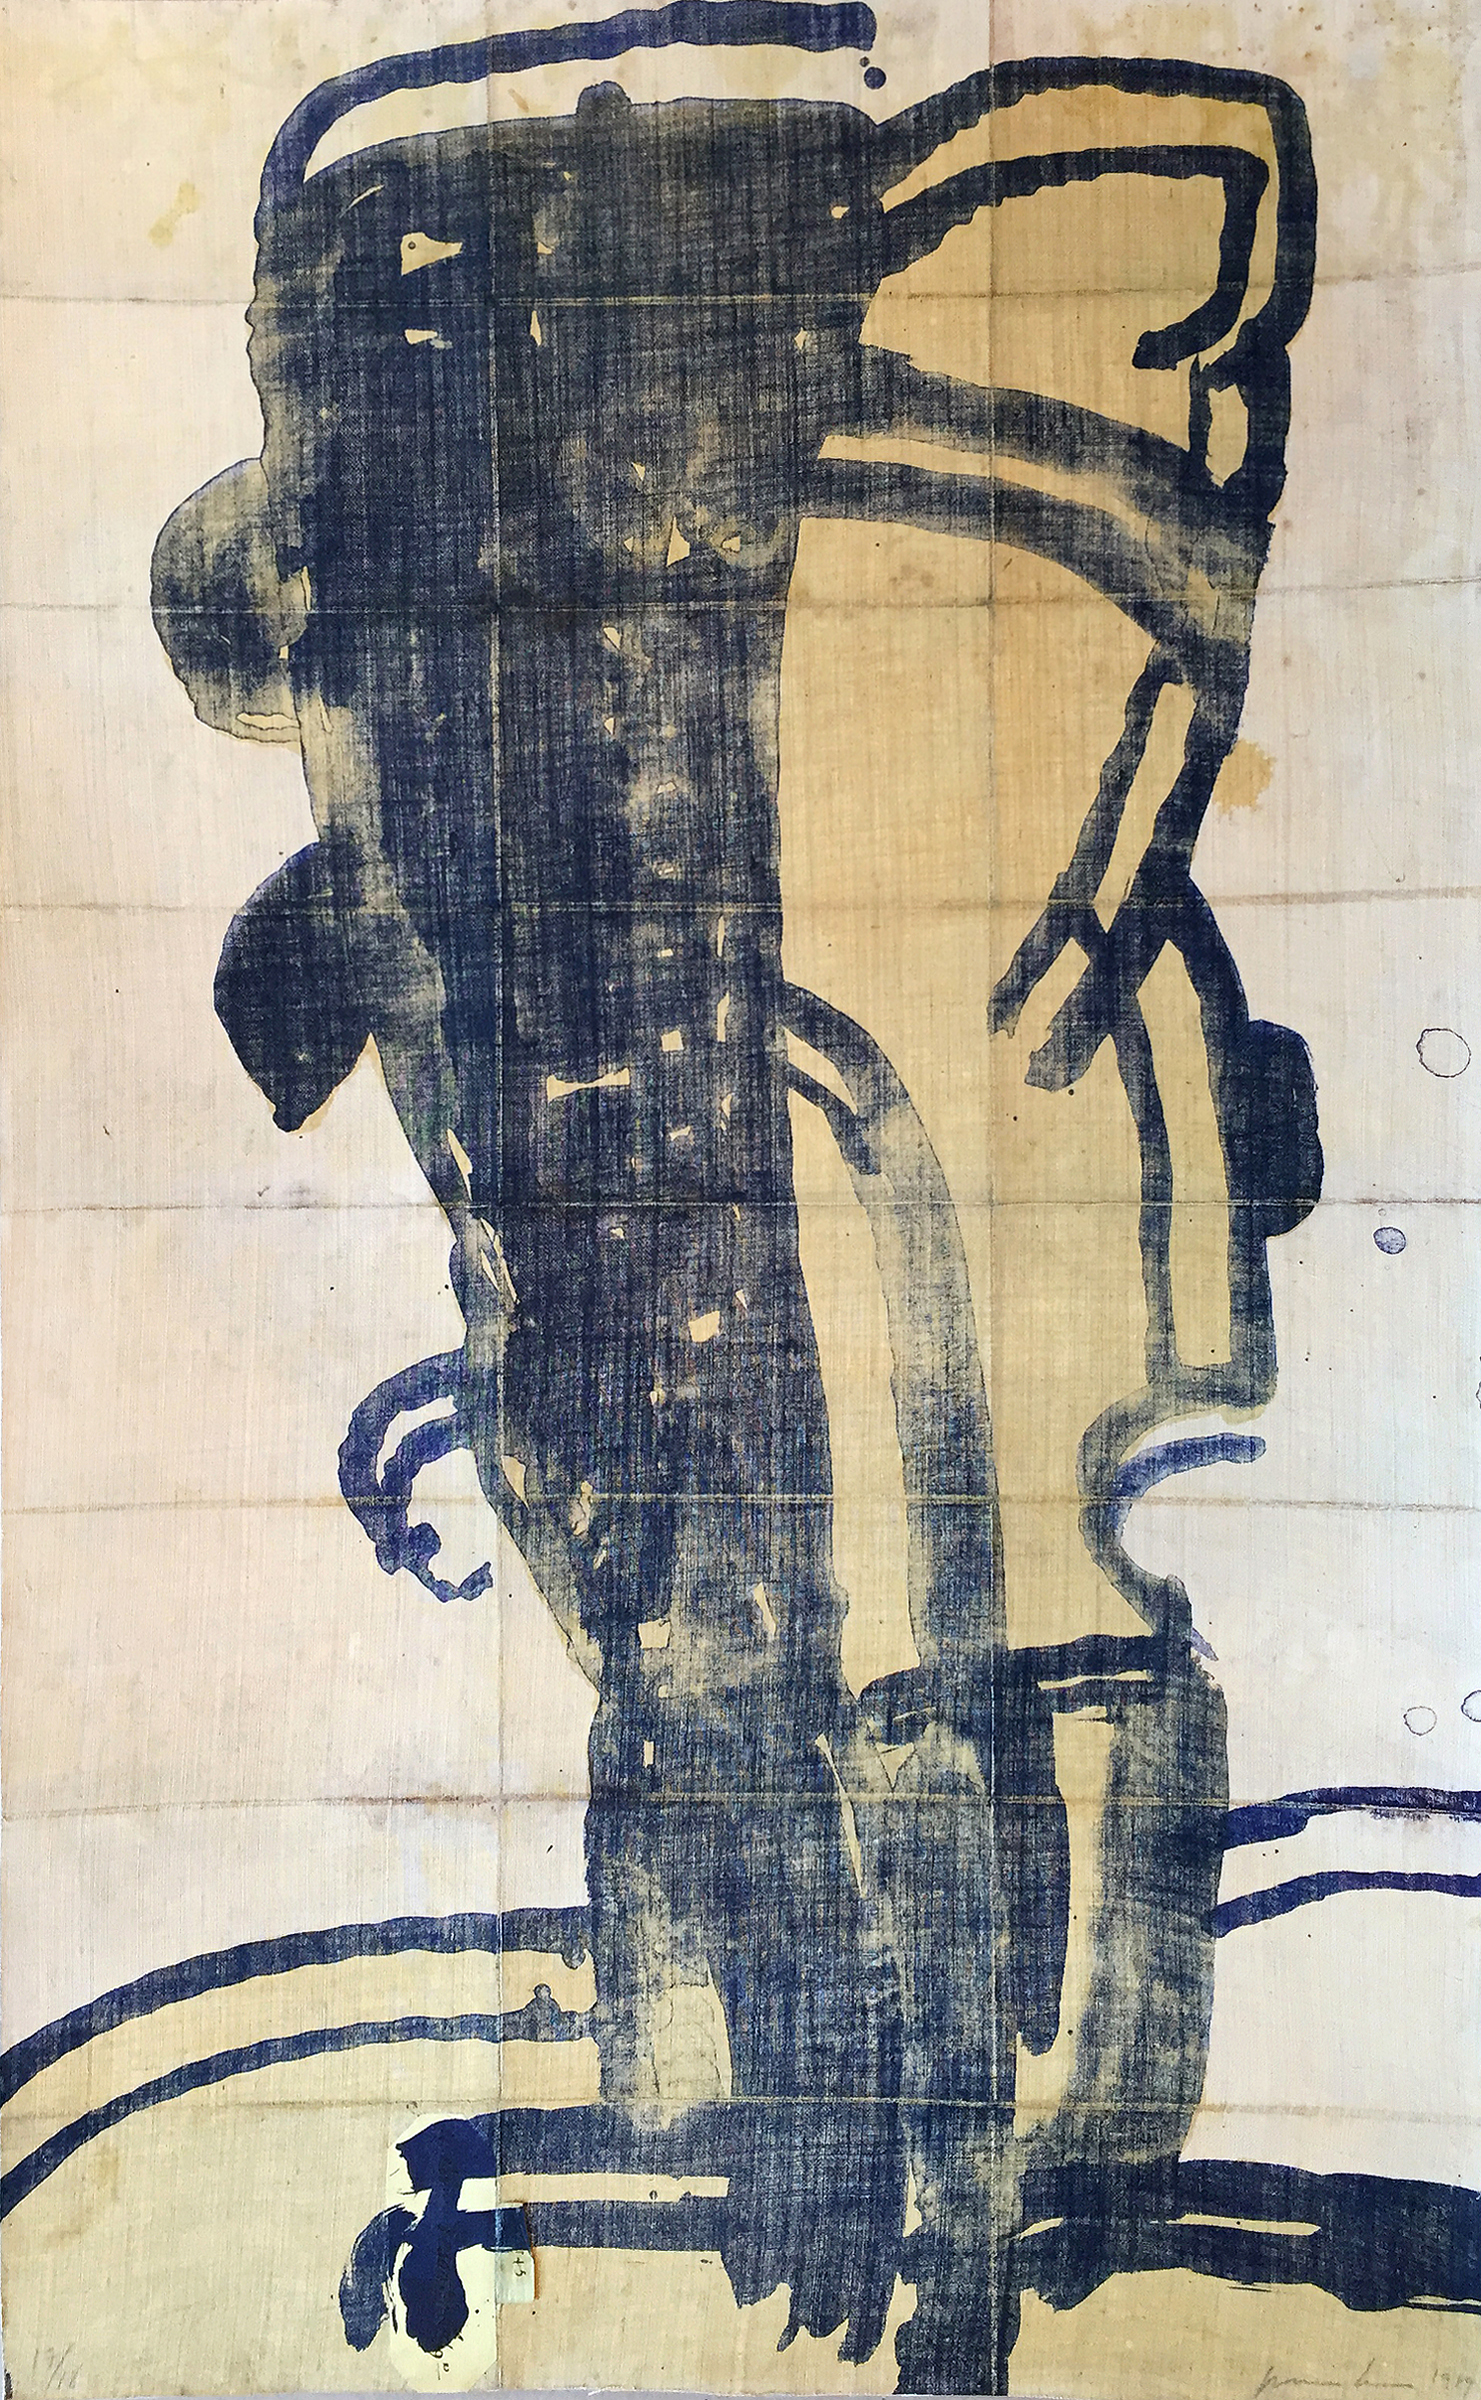 Yellow Cell (ed. 17 of 18), 1989, 22.5 x 36.5 inches , Lithograph on canvas